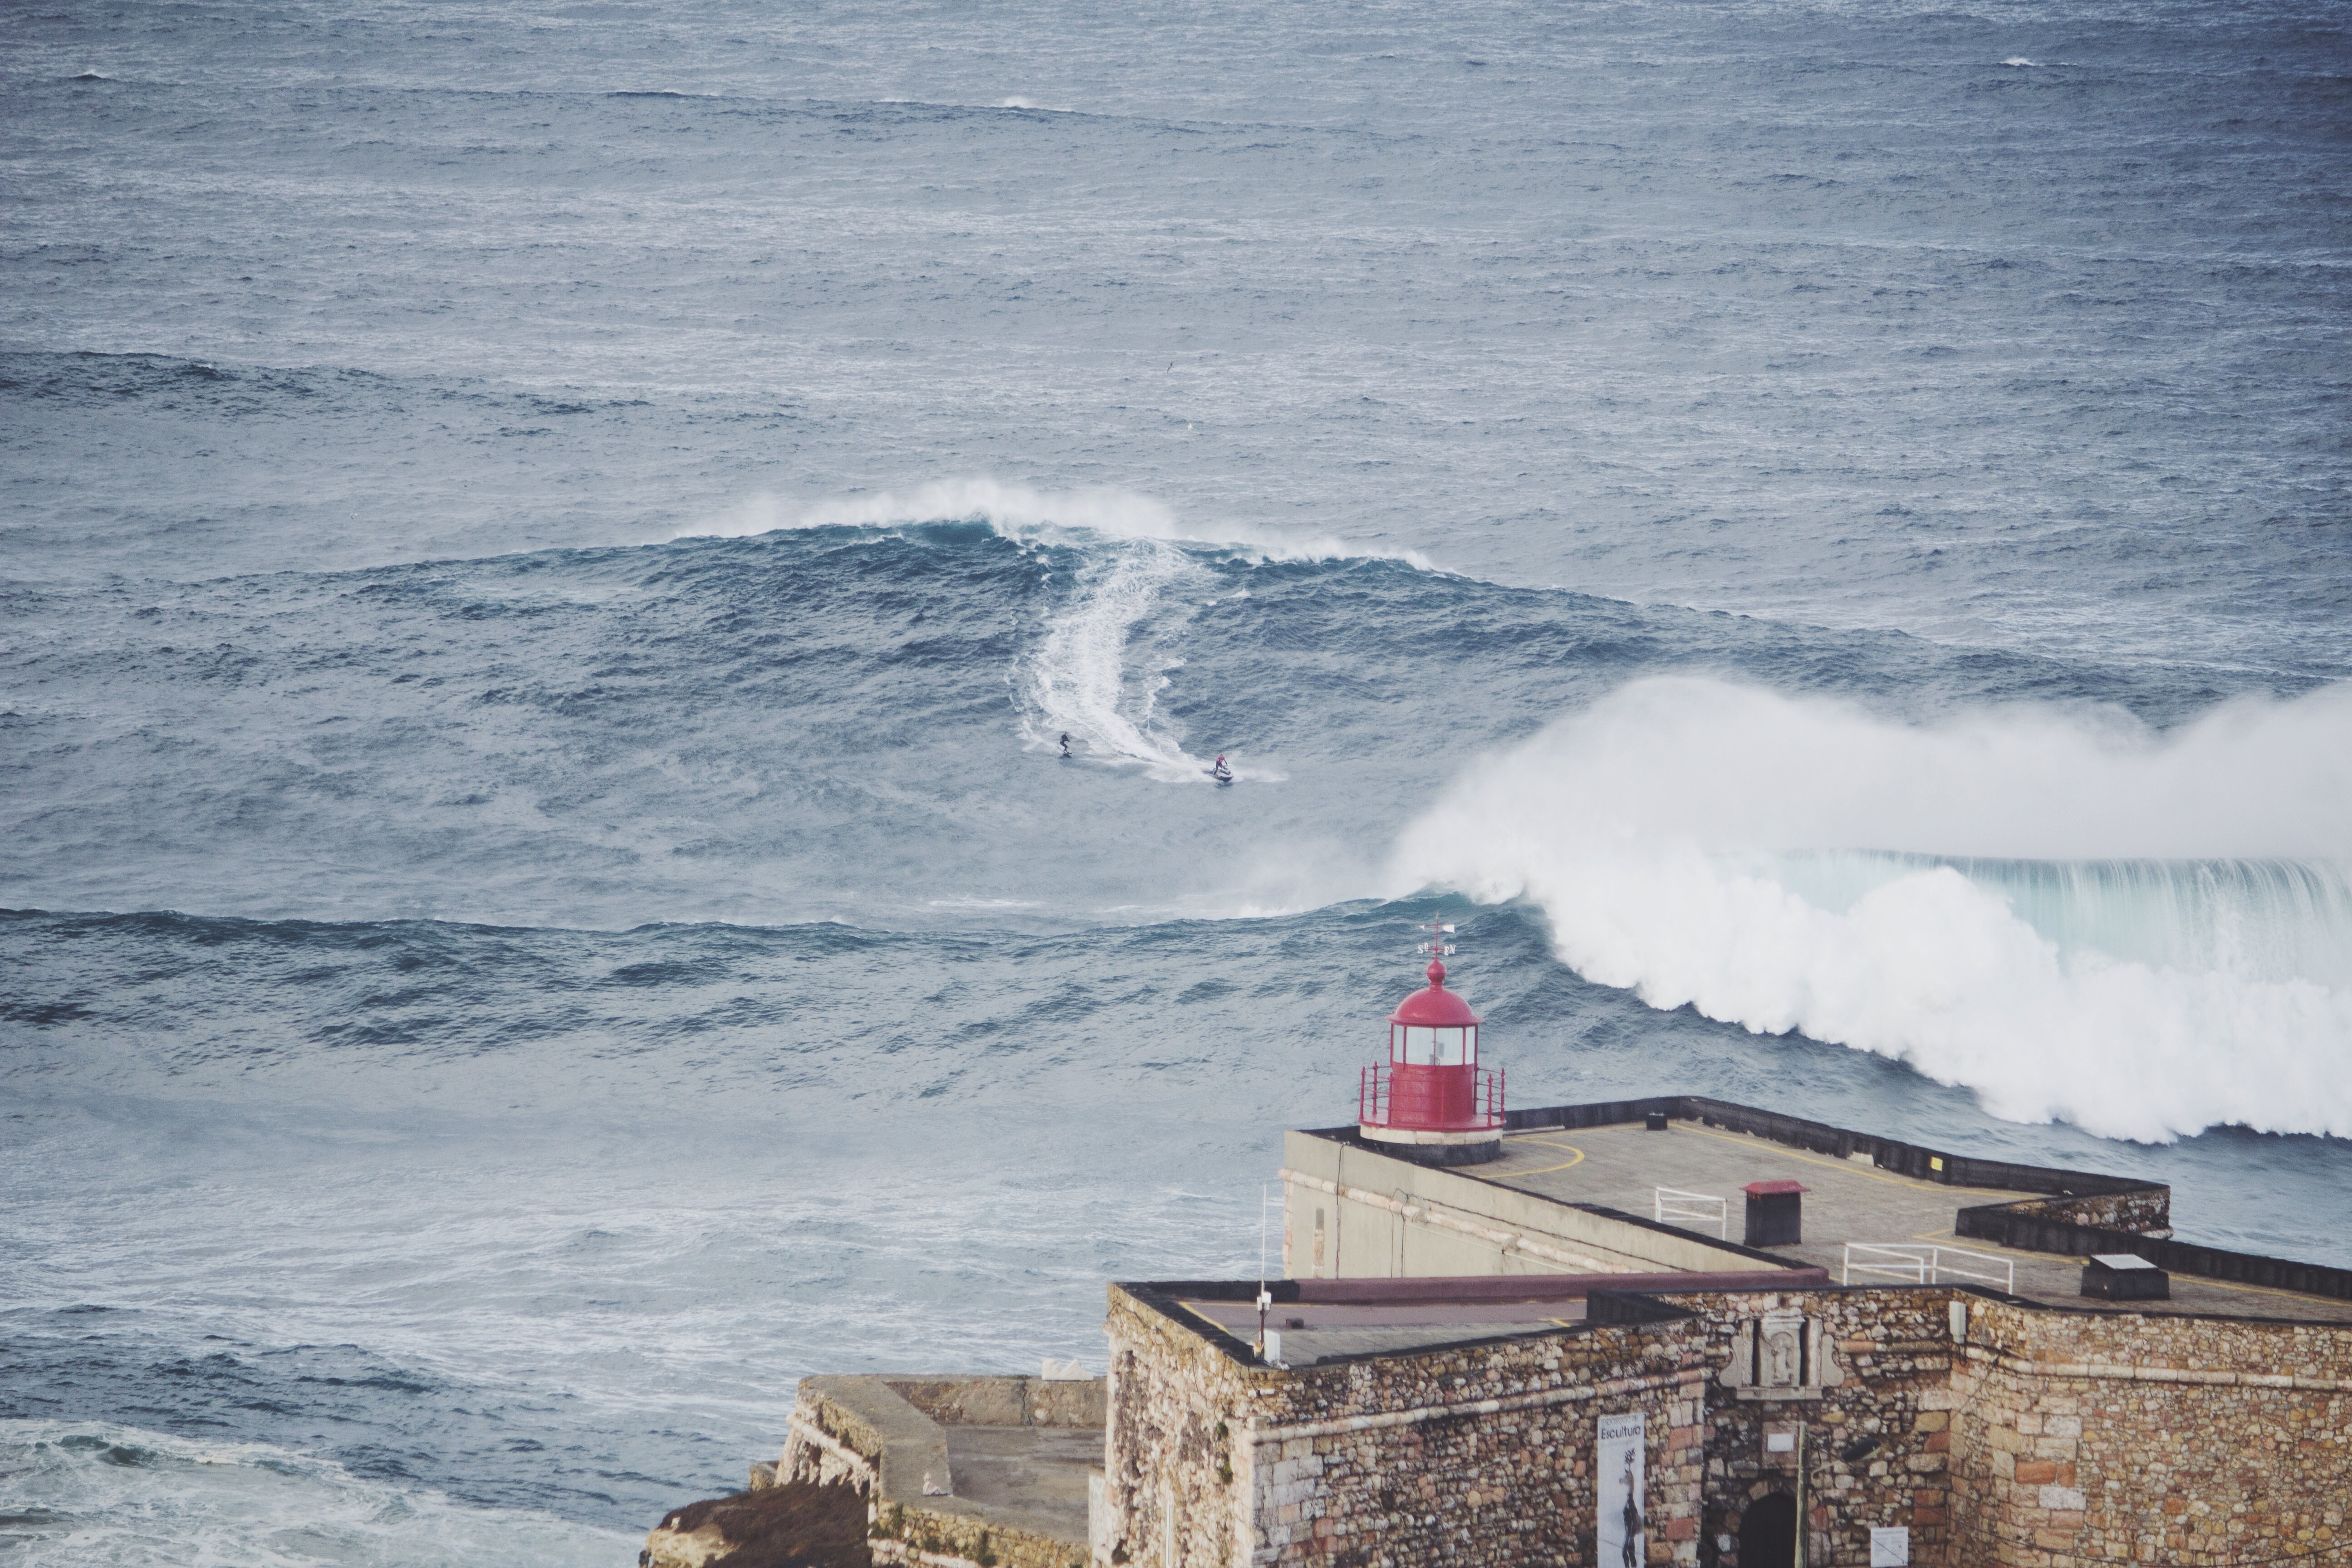 An ocean wave curling in the distance, in front of a coastal lighthouse at Nazaré